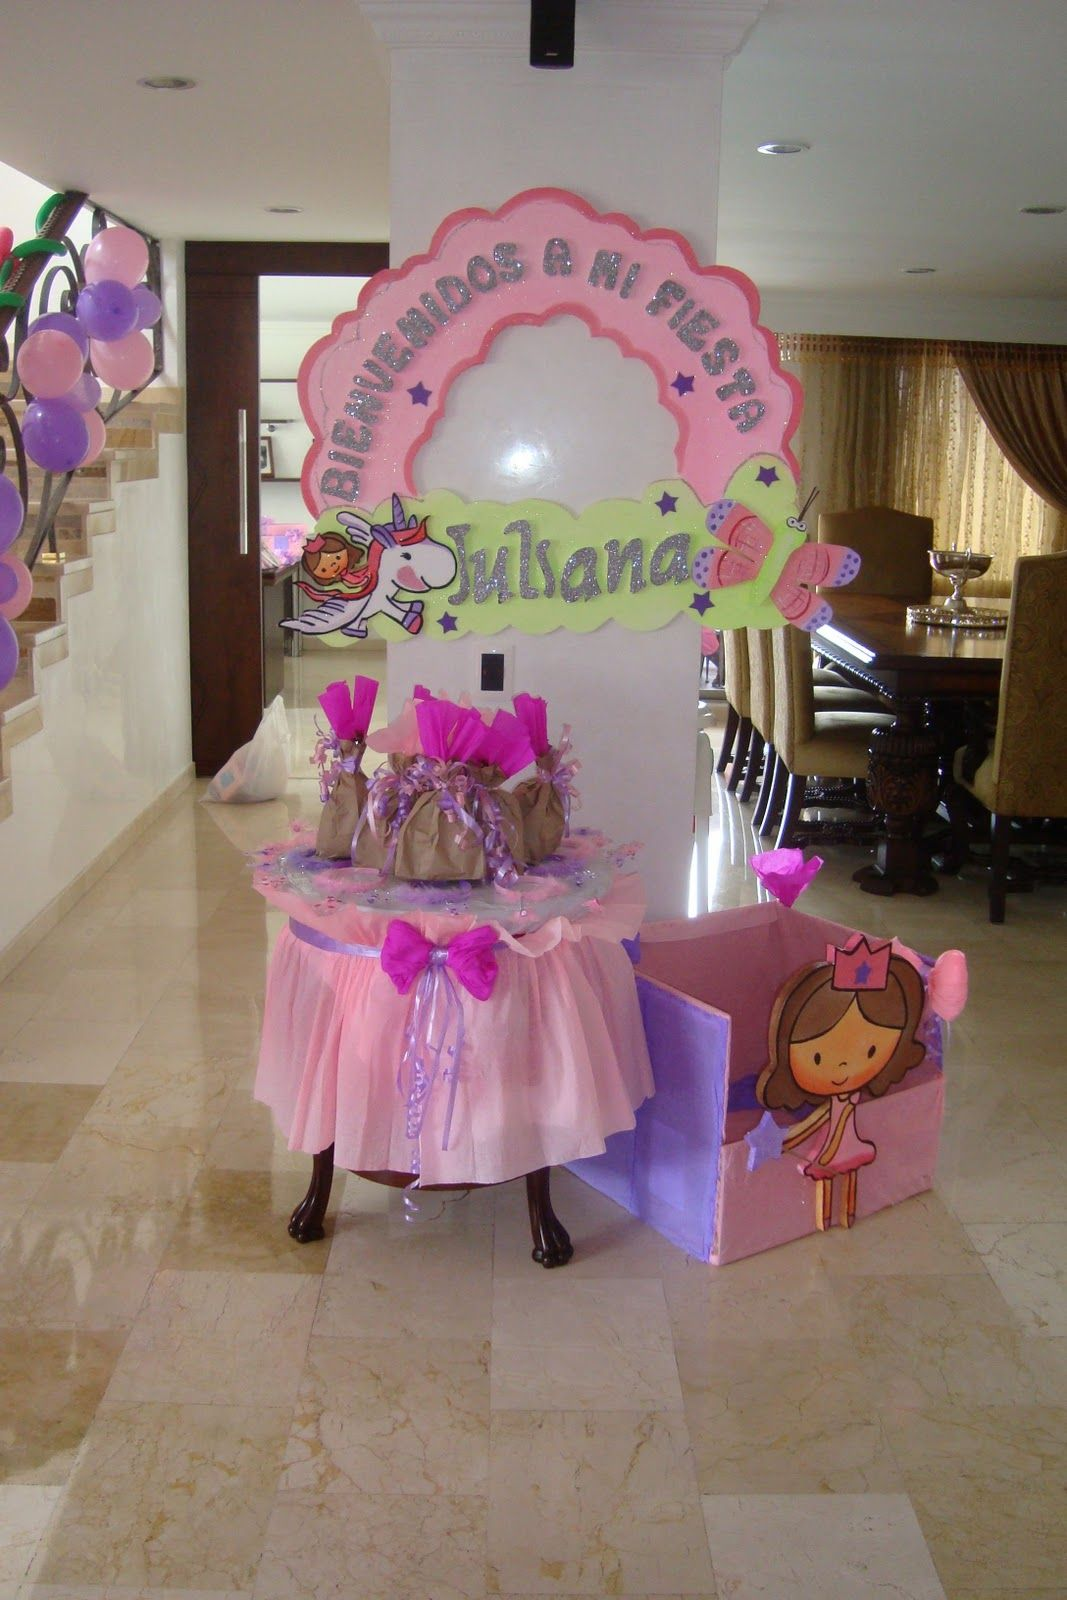 Decoracion fiesta princesa ni a revoltosos recreaciones for Decoracion cumpleanos princesas